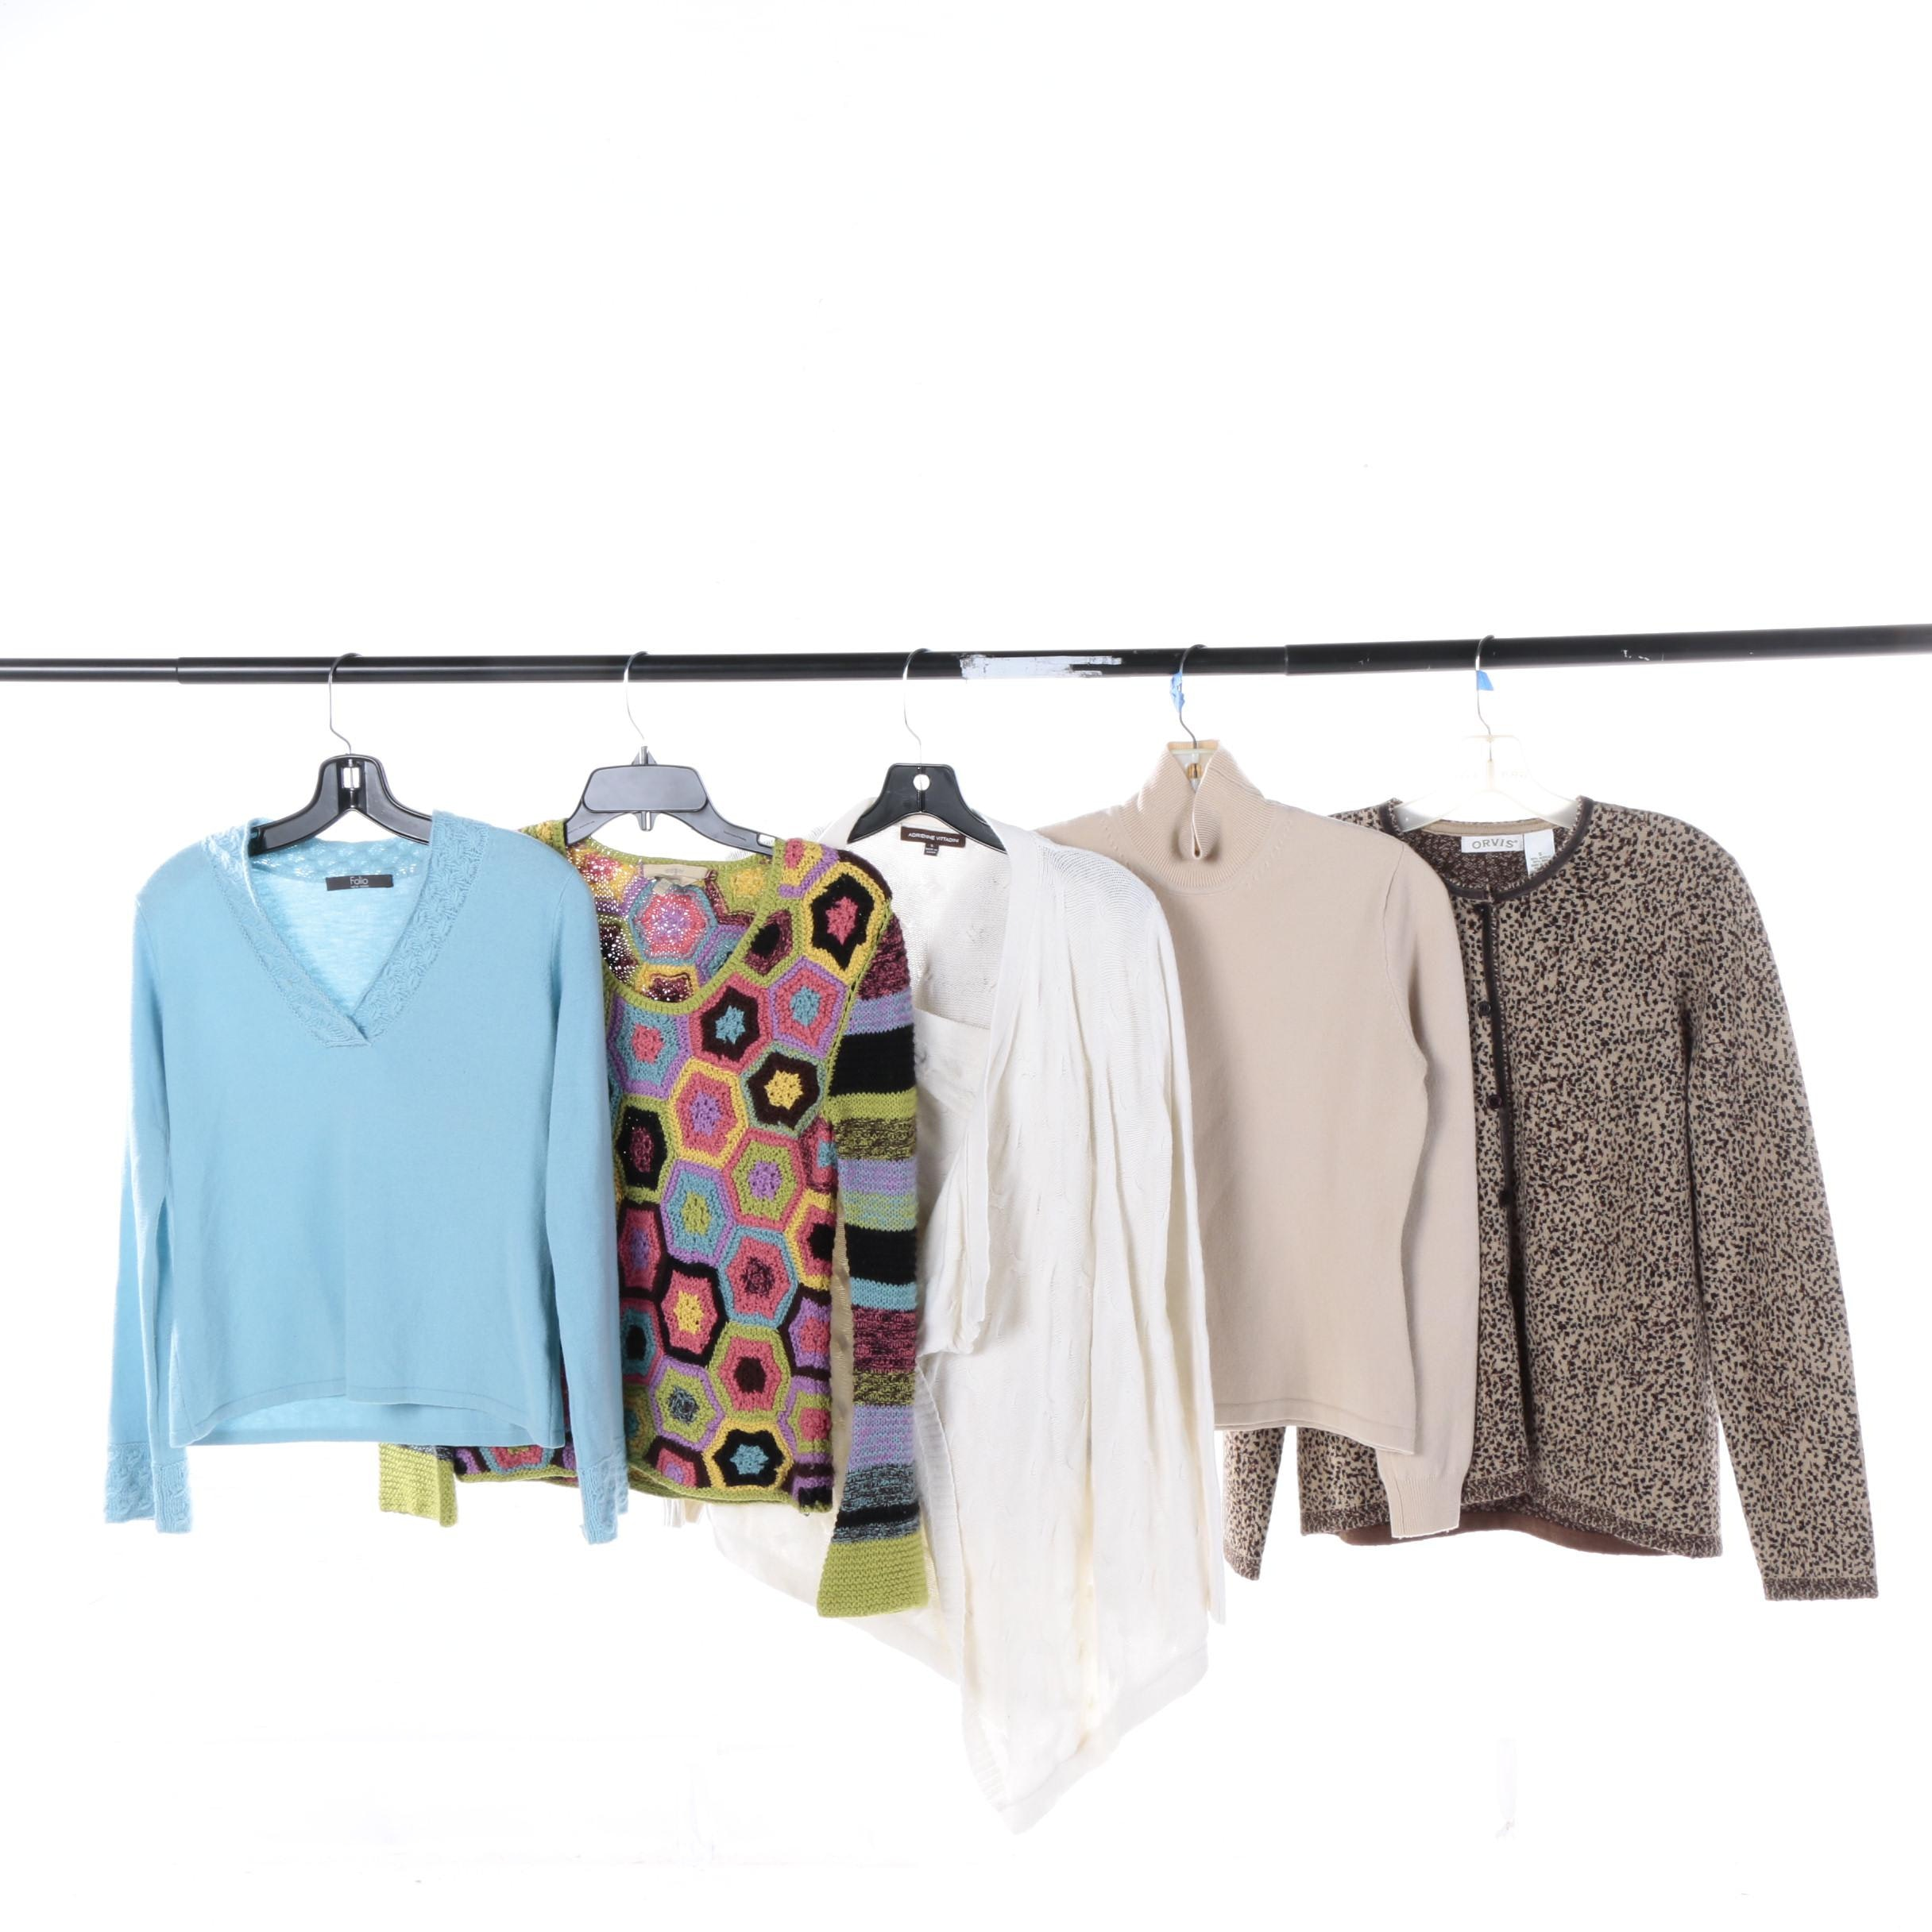 Women's Sweaters and Cardigans Including Orvis and Adrienne Vittadini